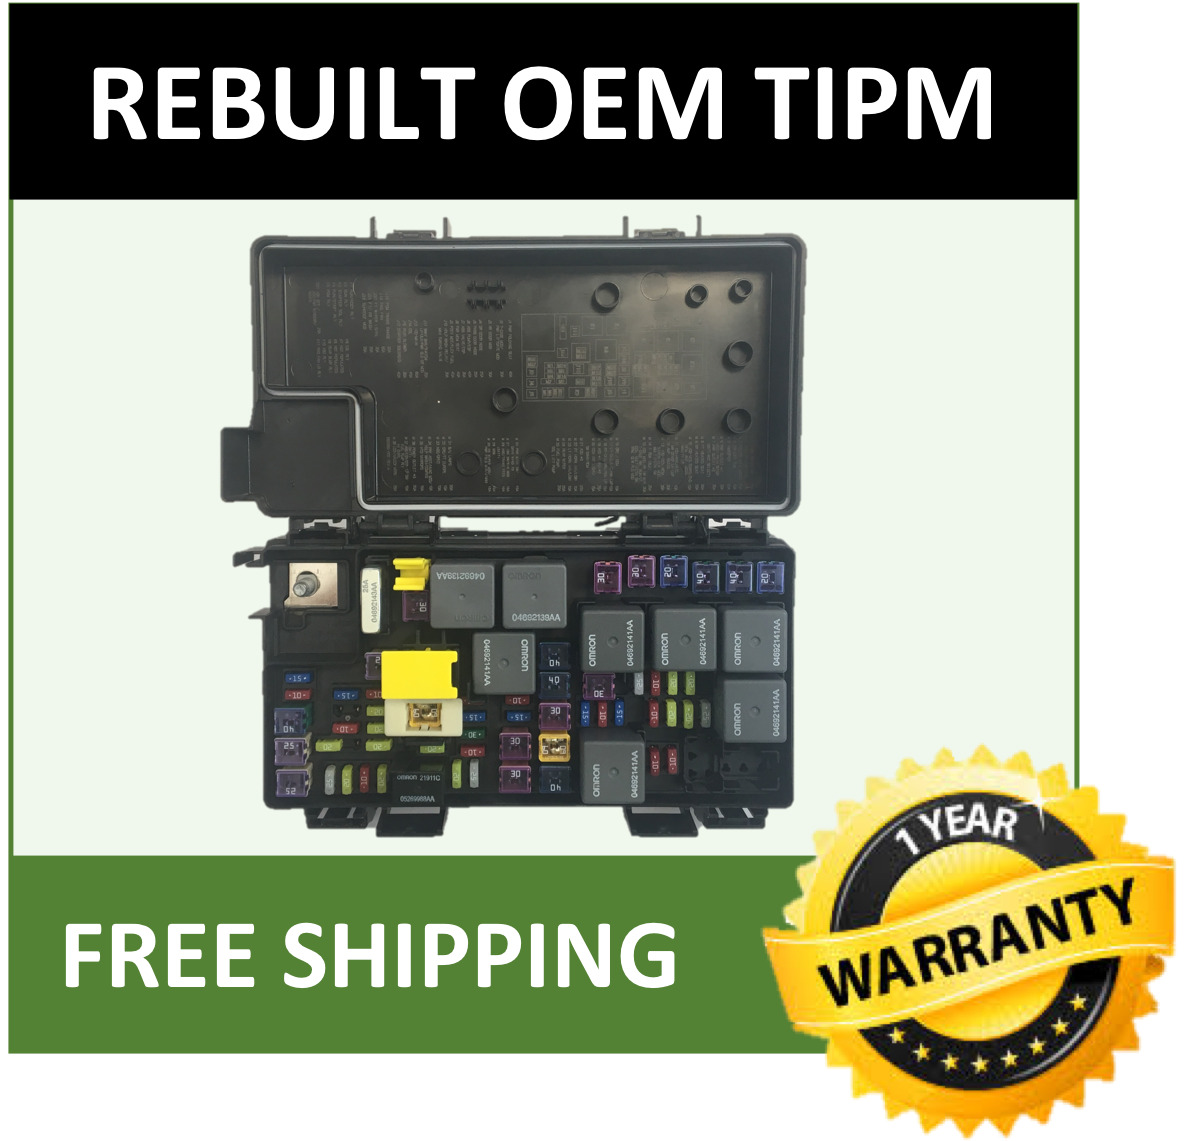 2010 Dodge Journey Caravan Tipm Fuse Box Rebuilt Oem 04692305ag Journeys 1 Of 1only 3 Available